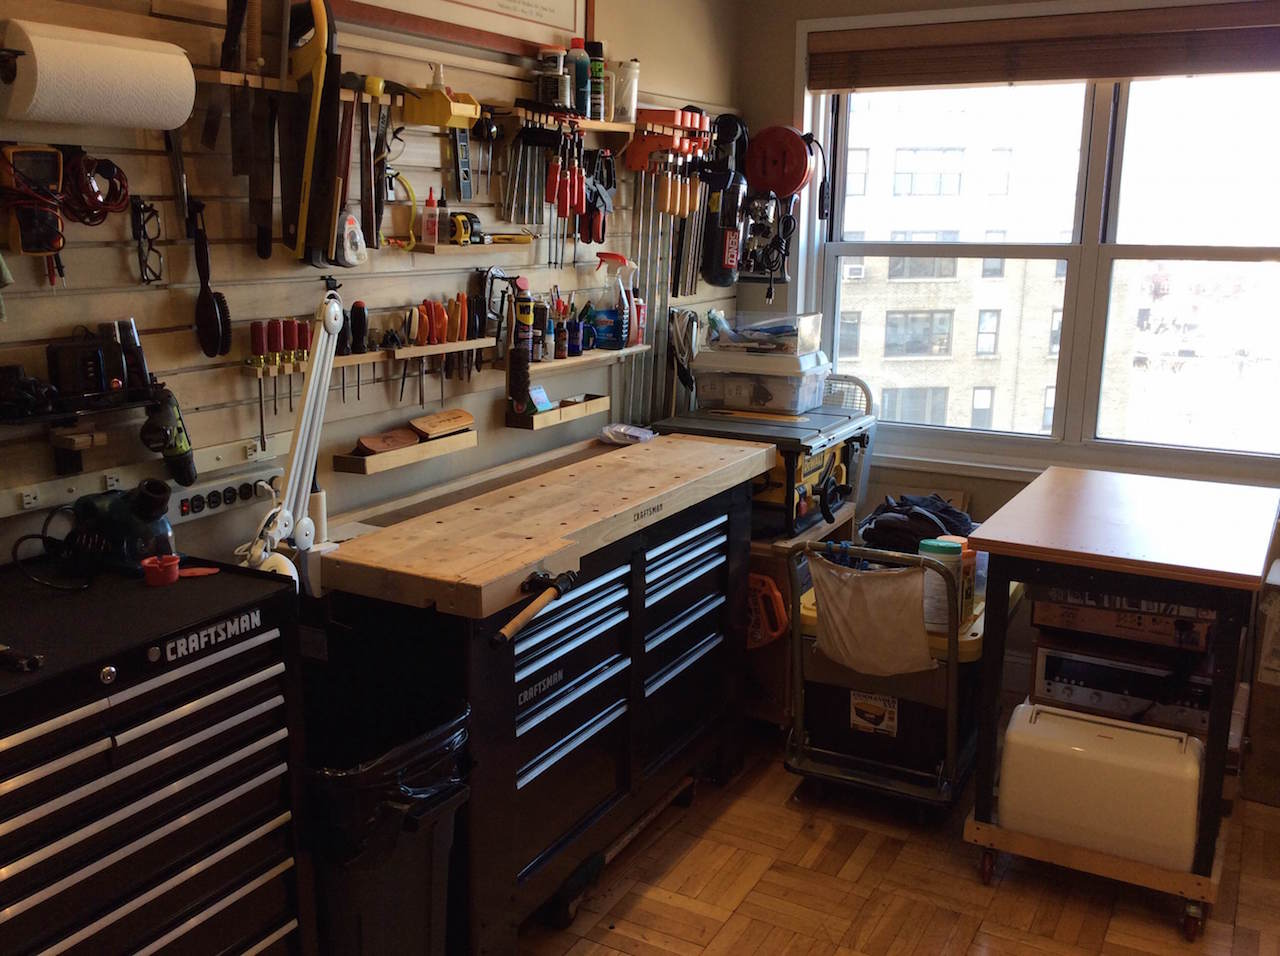 Woodworking in Basement vs. in Apartment